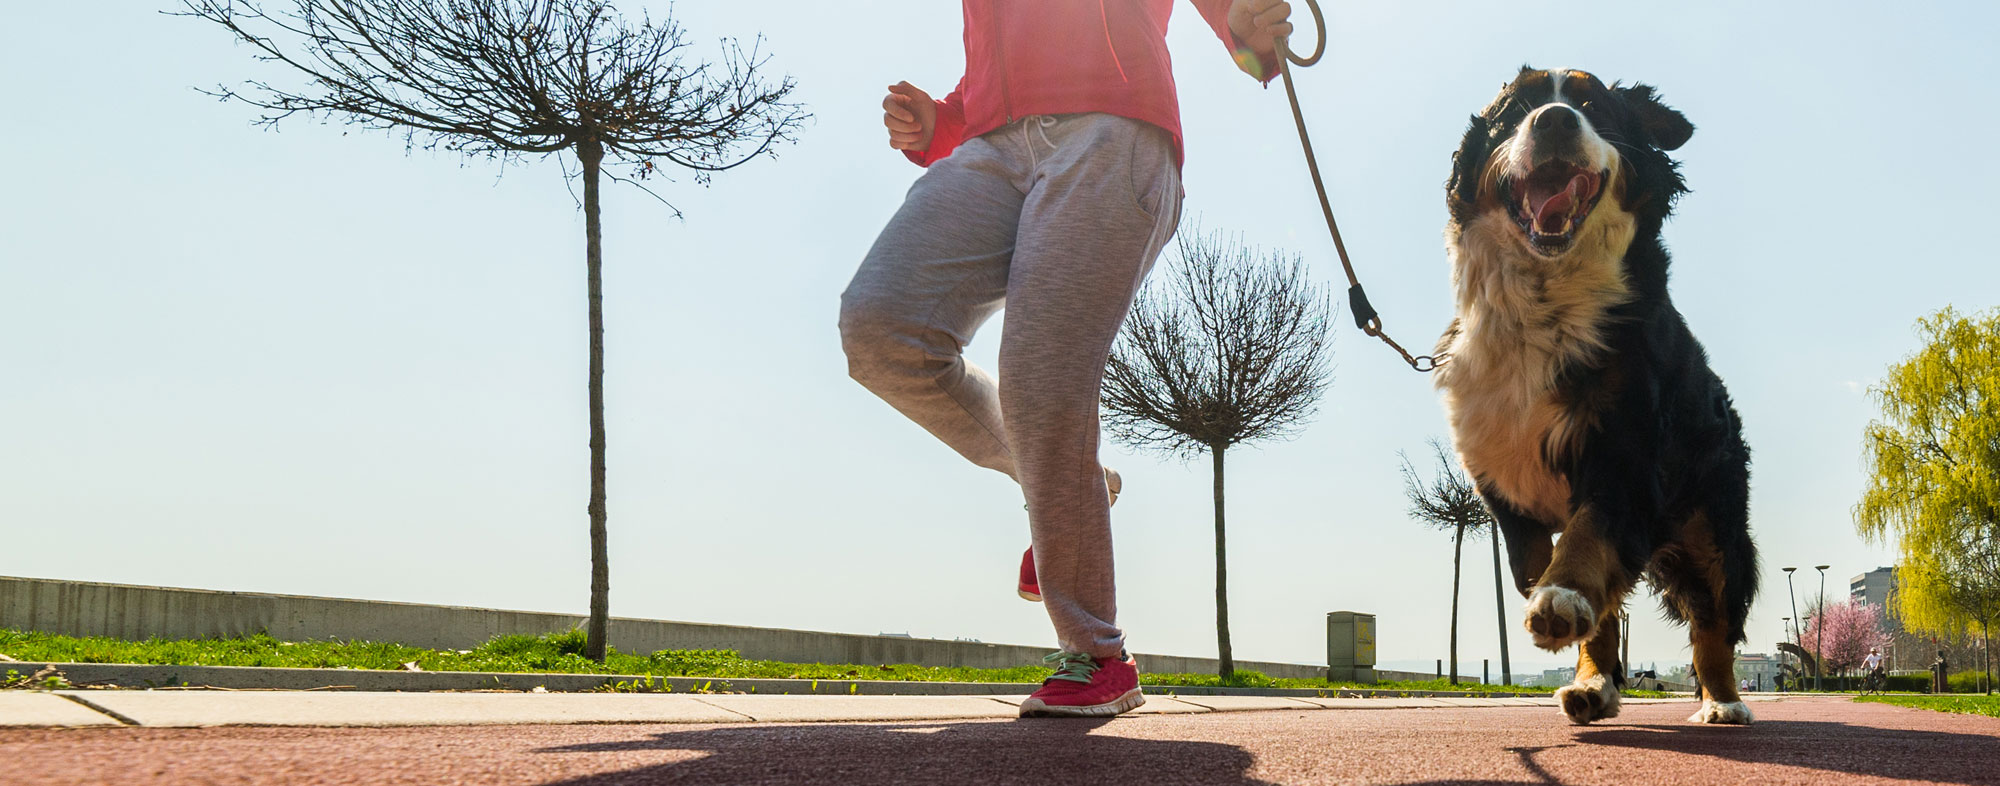 Lose weight and improve your health by running with your dog